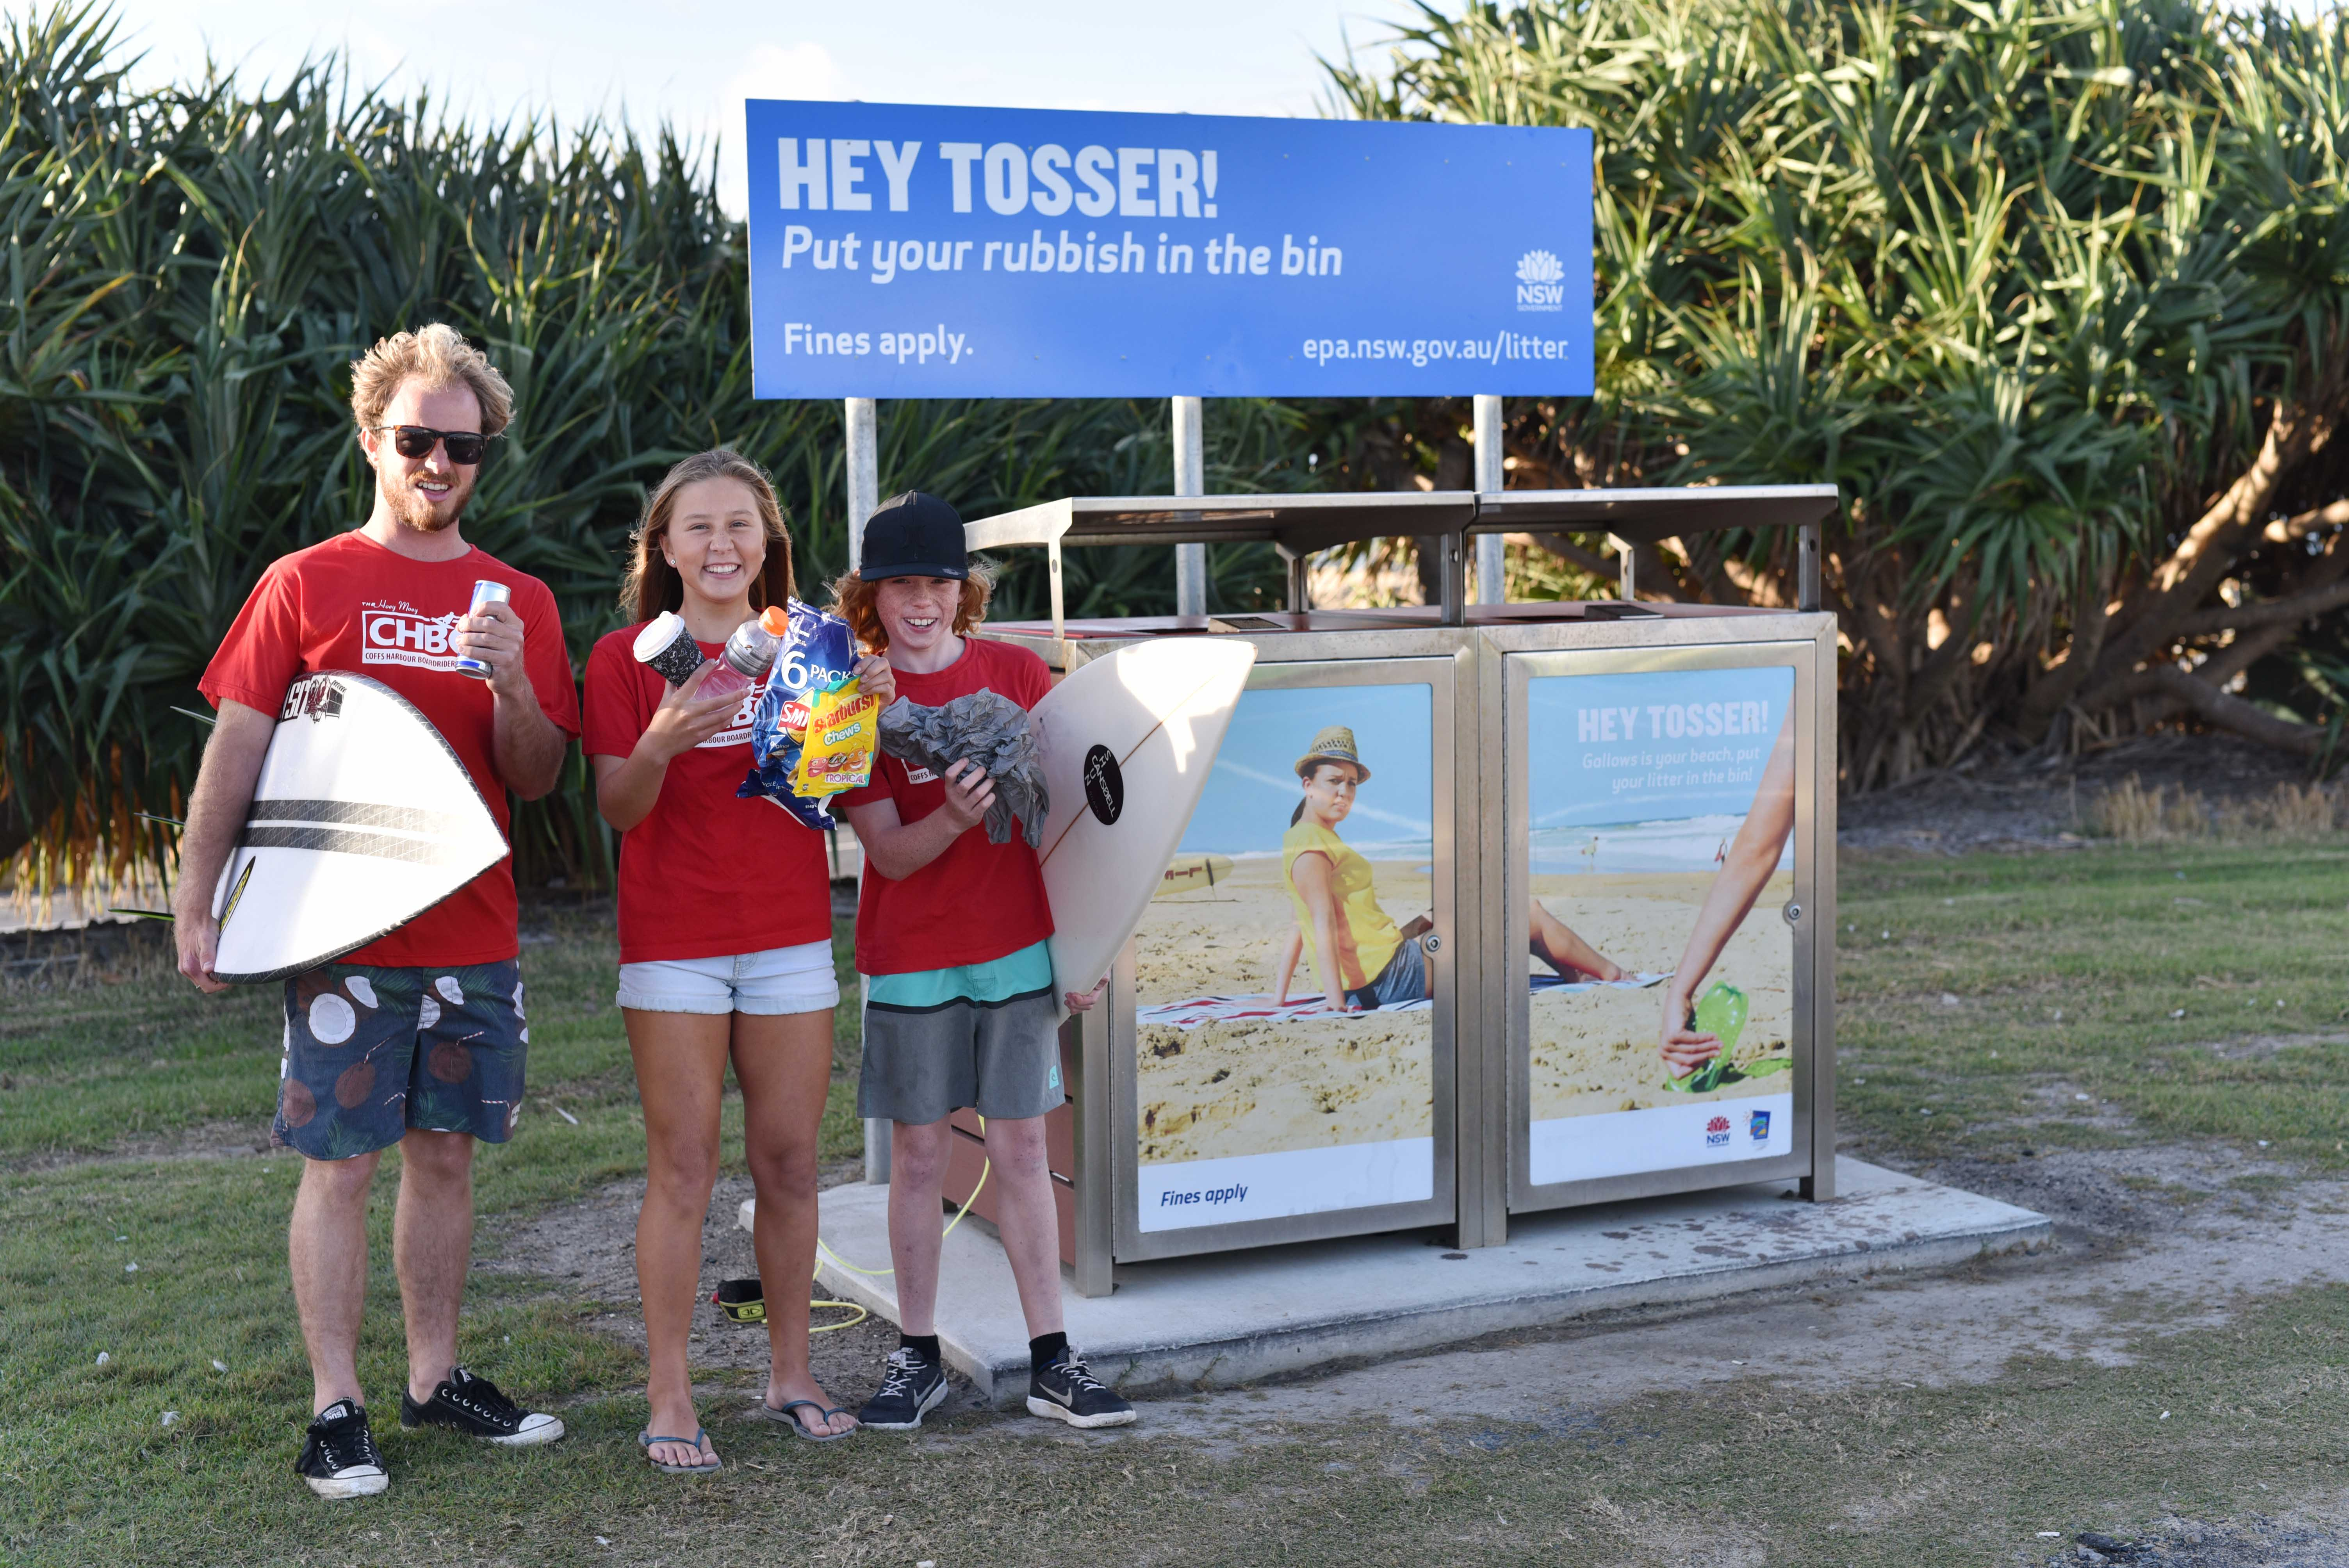 Litter is the loser at Gallows Beach thanks to a partnership between  Council and Coffs Harbour Boardriders Club to help reduce rubbish dumping. ffe0547ed64